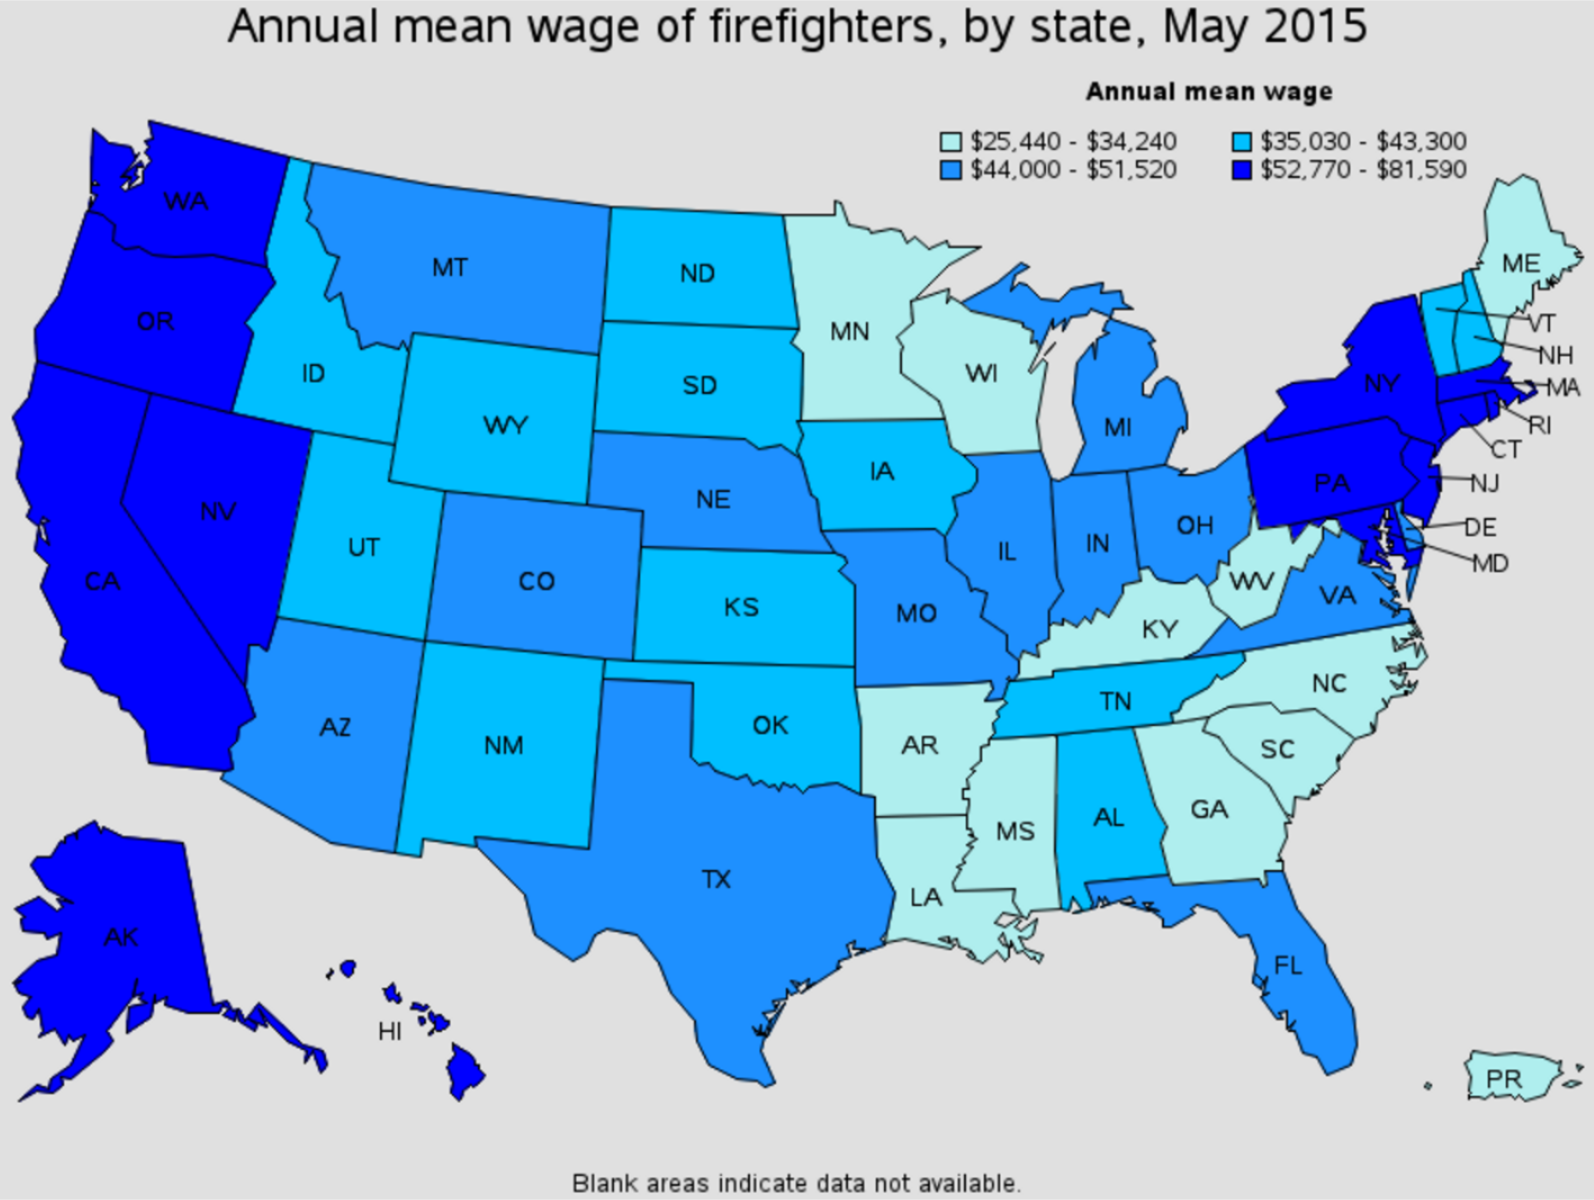 firefighter average salary by state Zalma Missouri